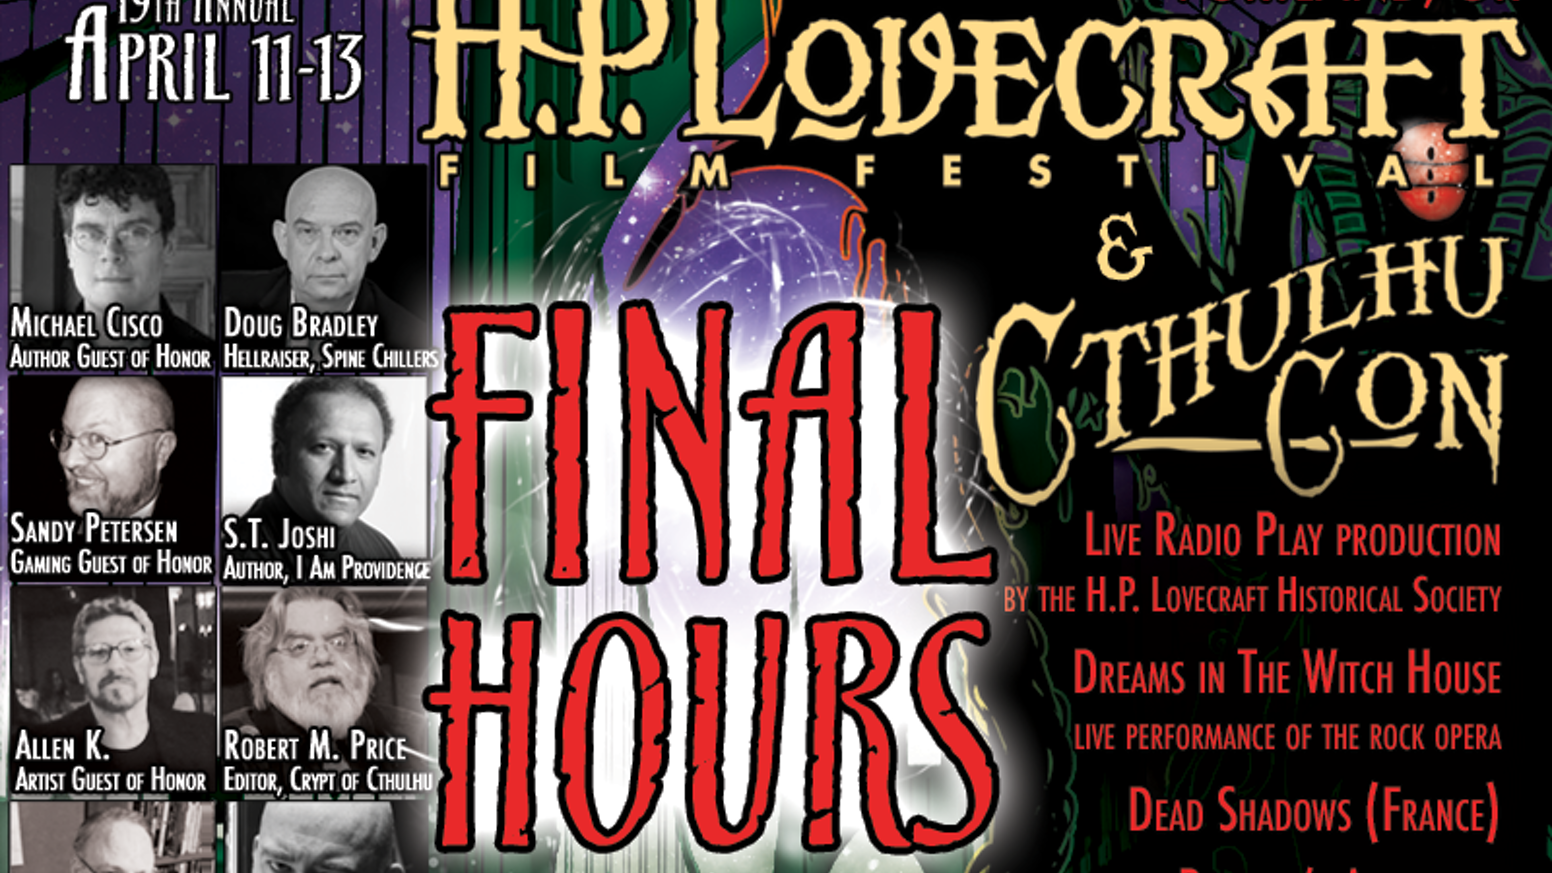 April 11-13, 2014: Three days of indie films, readings, panels, art, music, & vendors, in honor of the master of the Weird tale.